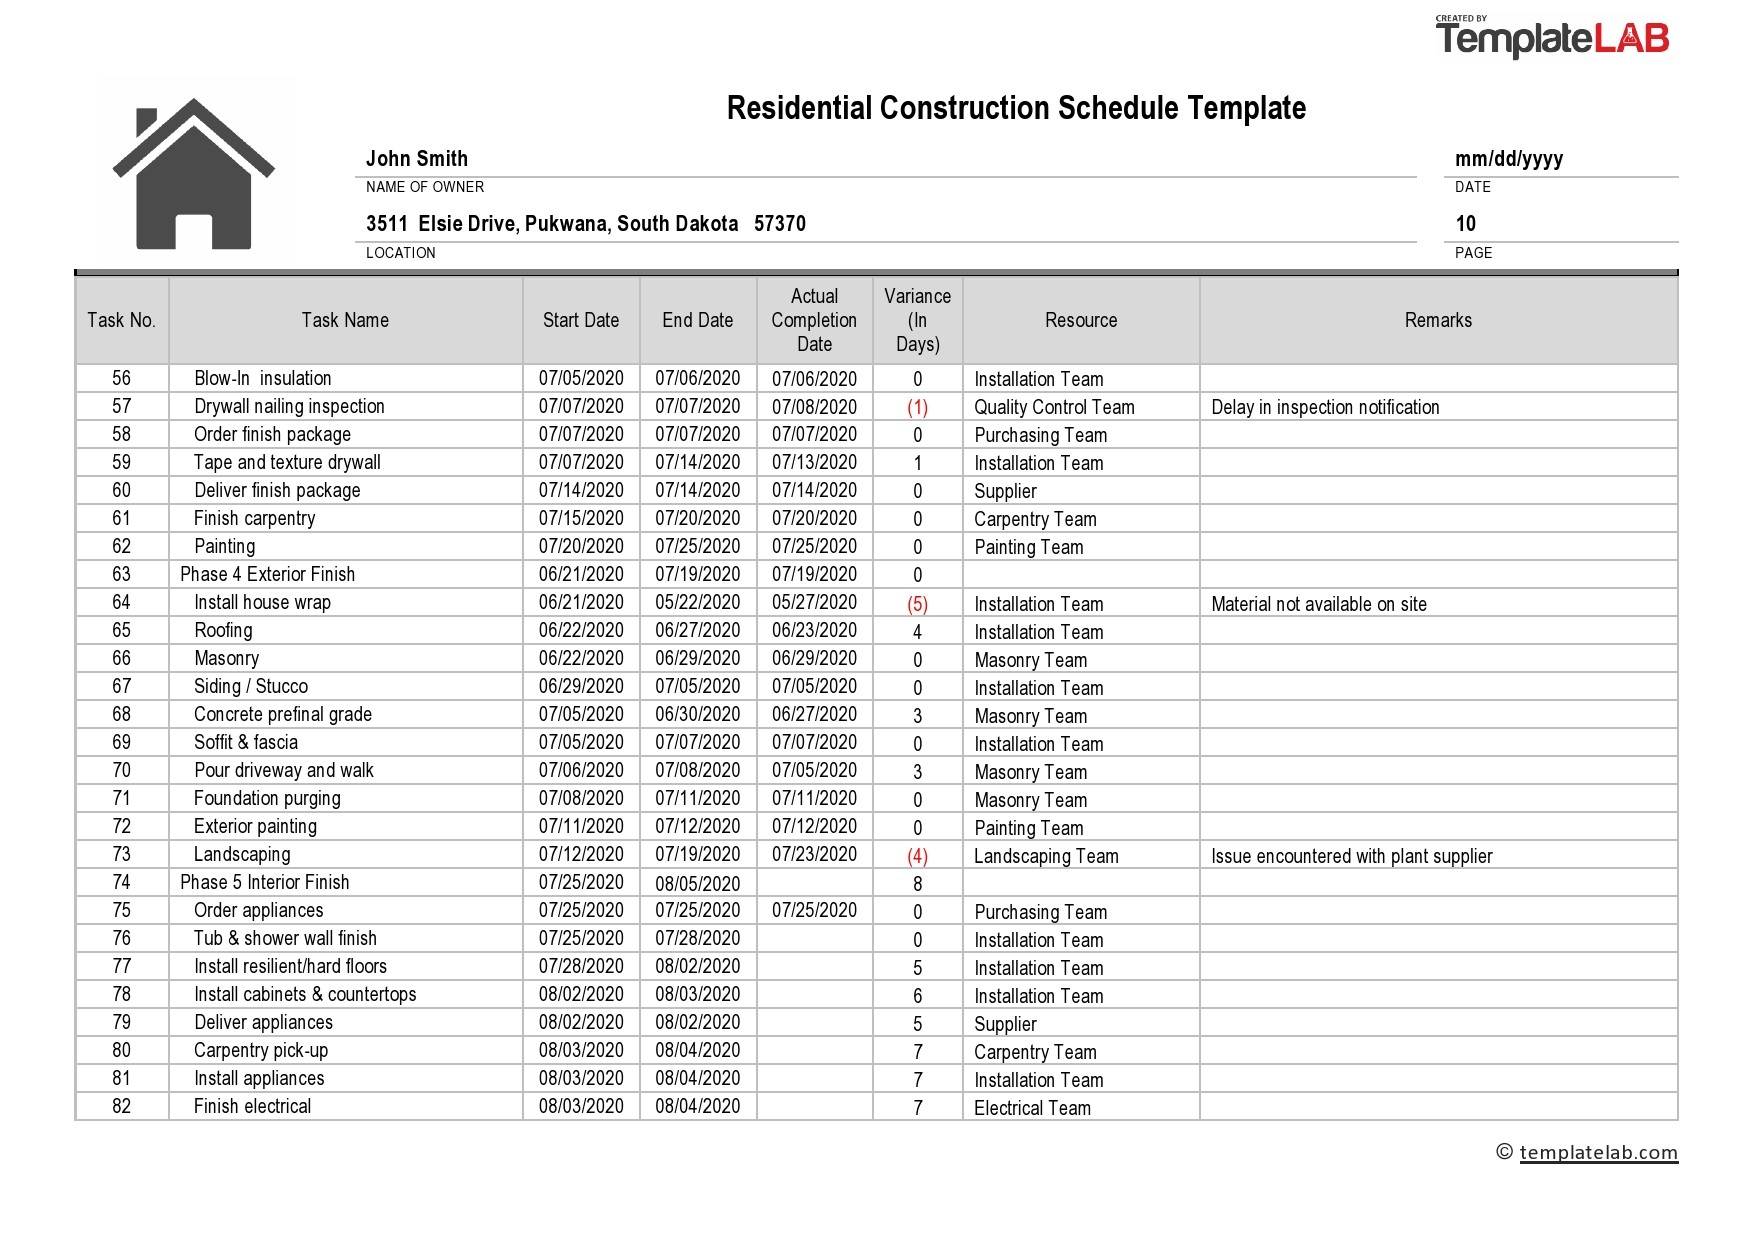 Residential Construction Schedule Template Excel from templatelab.com